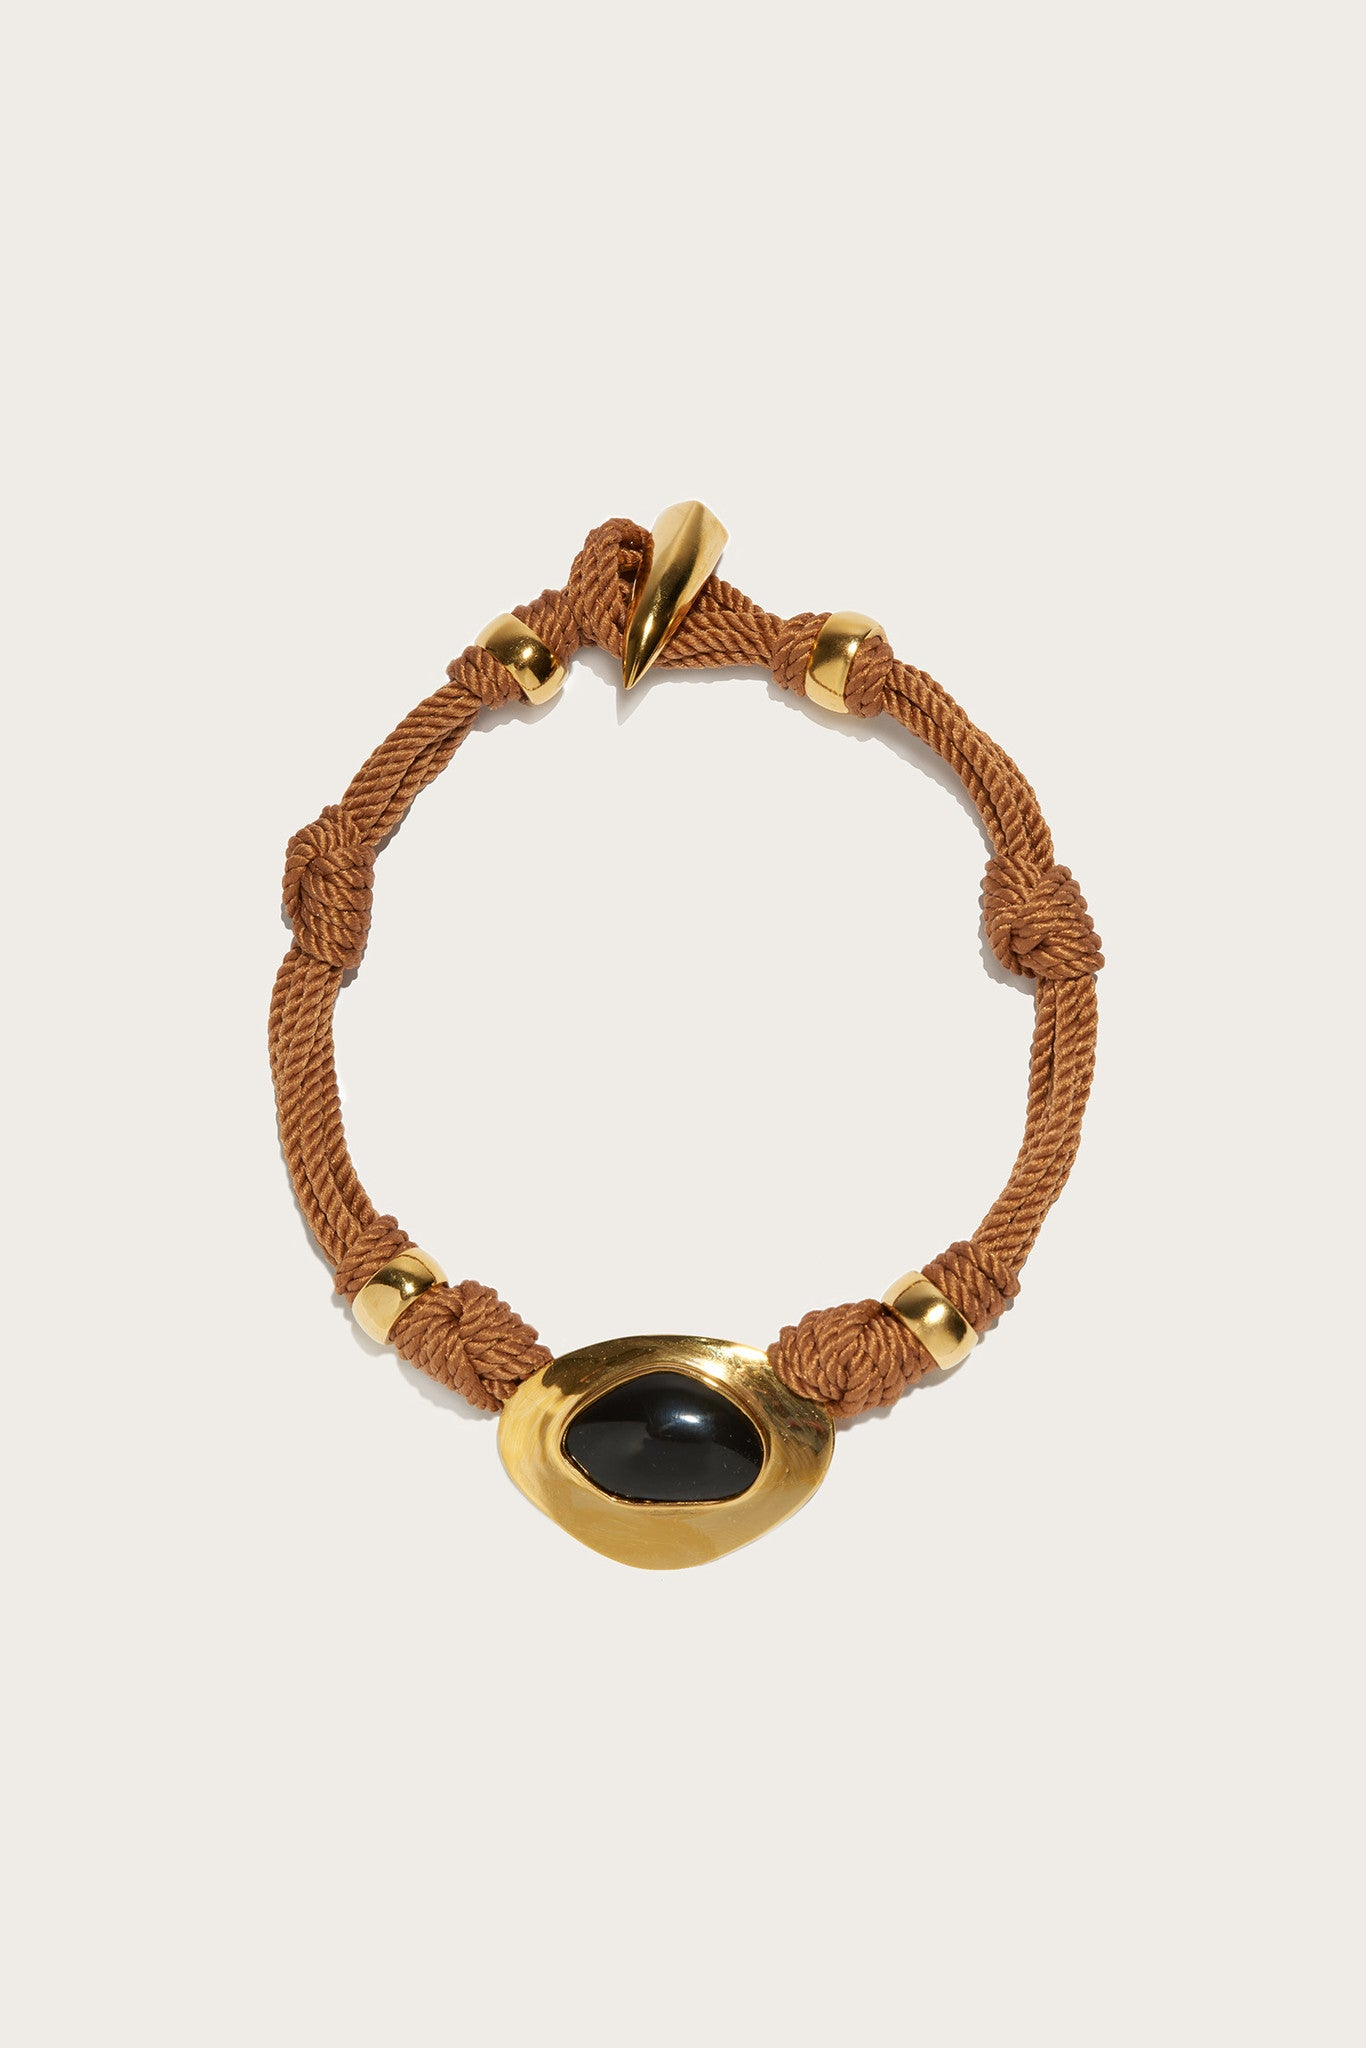 Agate Treasure Necklace, Gold/Brass/Black Agate by Lizzie Fortunato